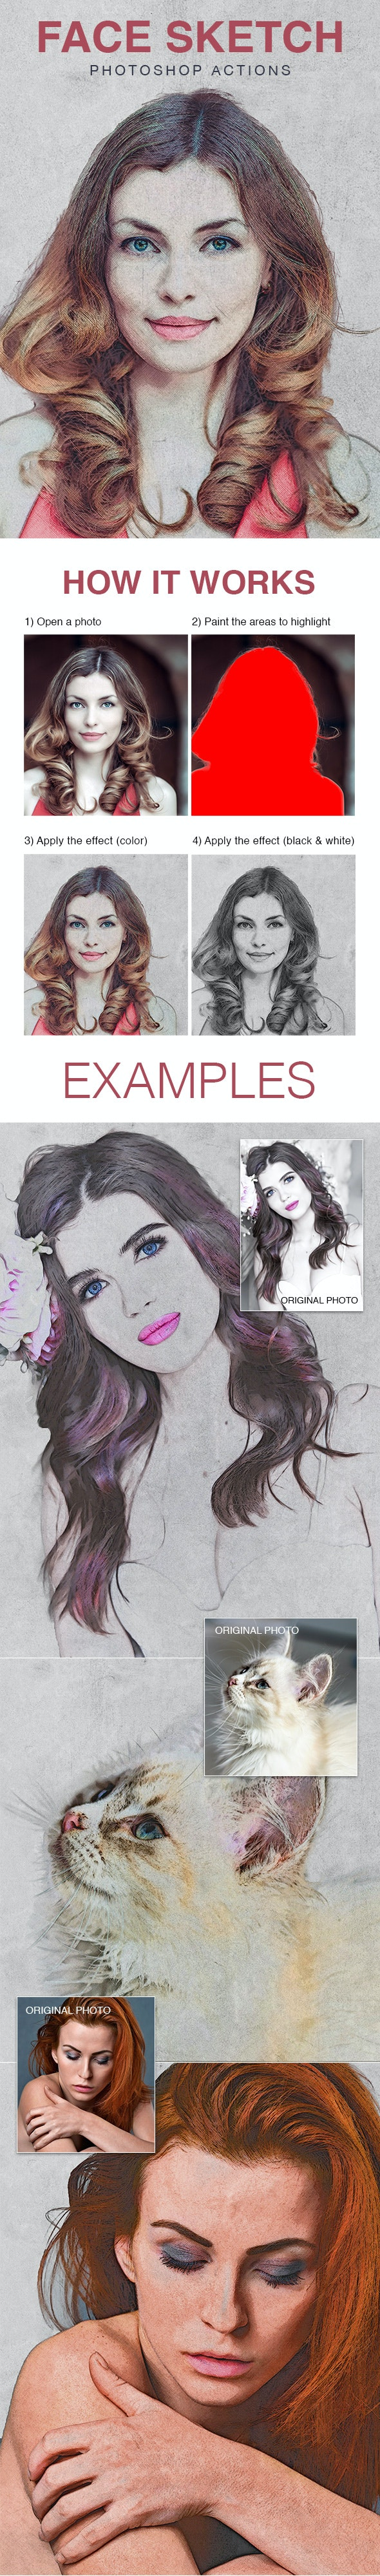 Face Sketch - Photoshop Actions - Photo Effects Actions